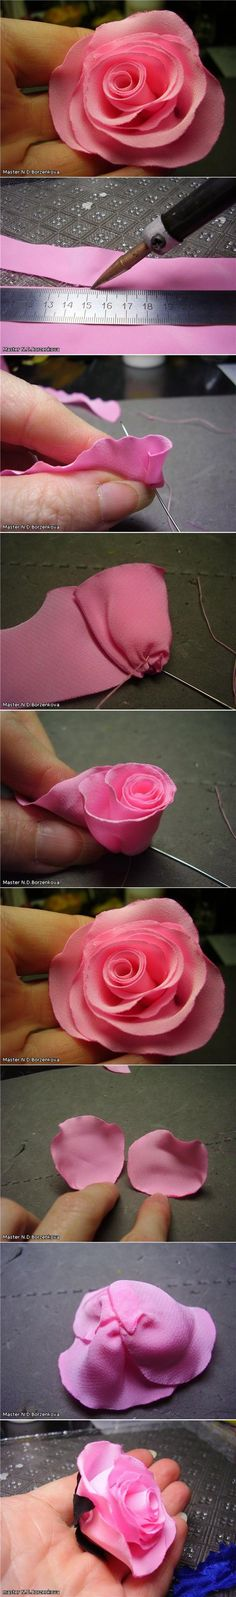 DIY Pretty Fabric Rose